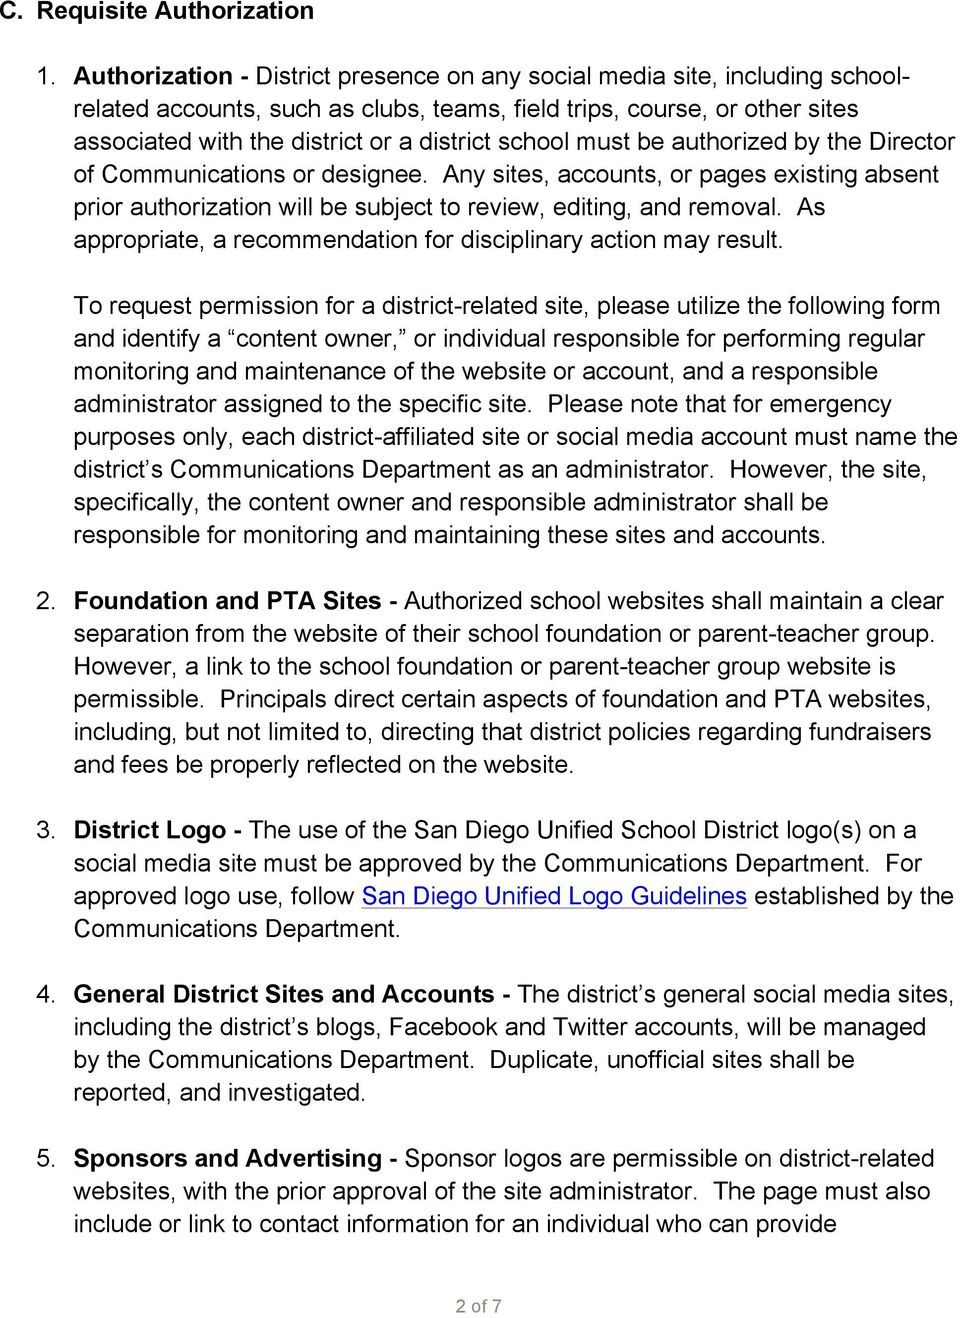 school must be authorized by the Director of Communications or designee. Any sites, accounts, or pages existing absent prior authorization will be subject to review, editing, and removal.